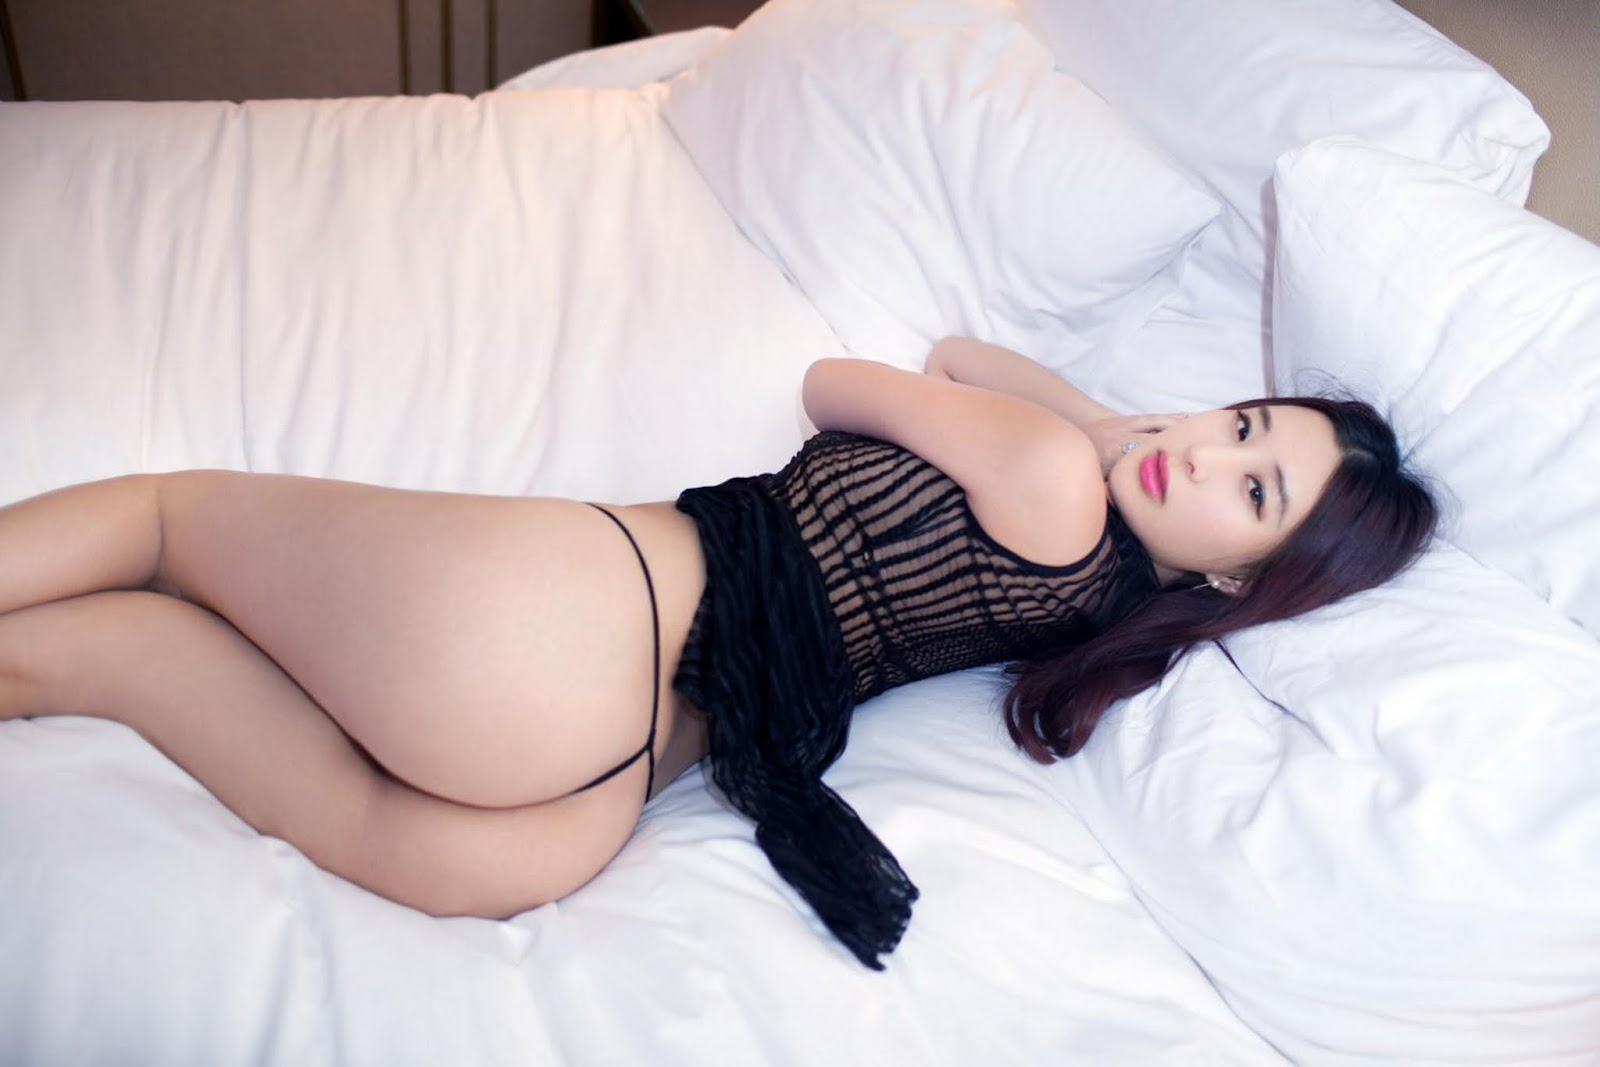 24 - Lake Model Sexy TUIGIRL NO.52 Hot